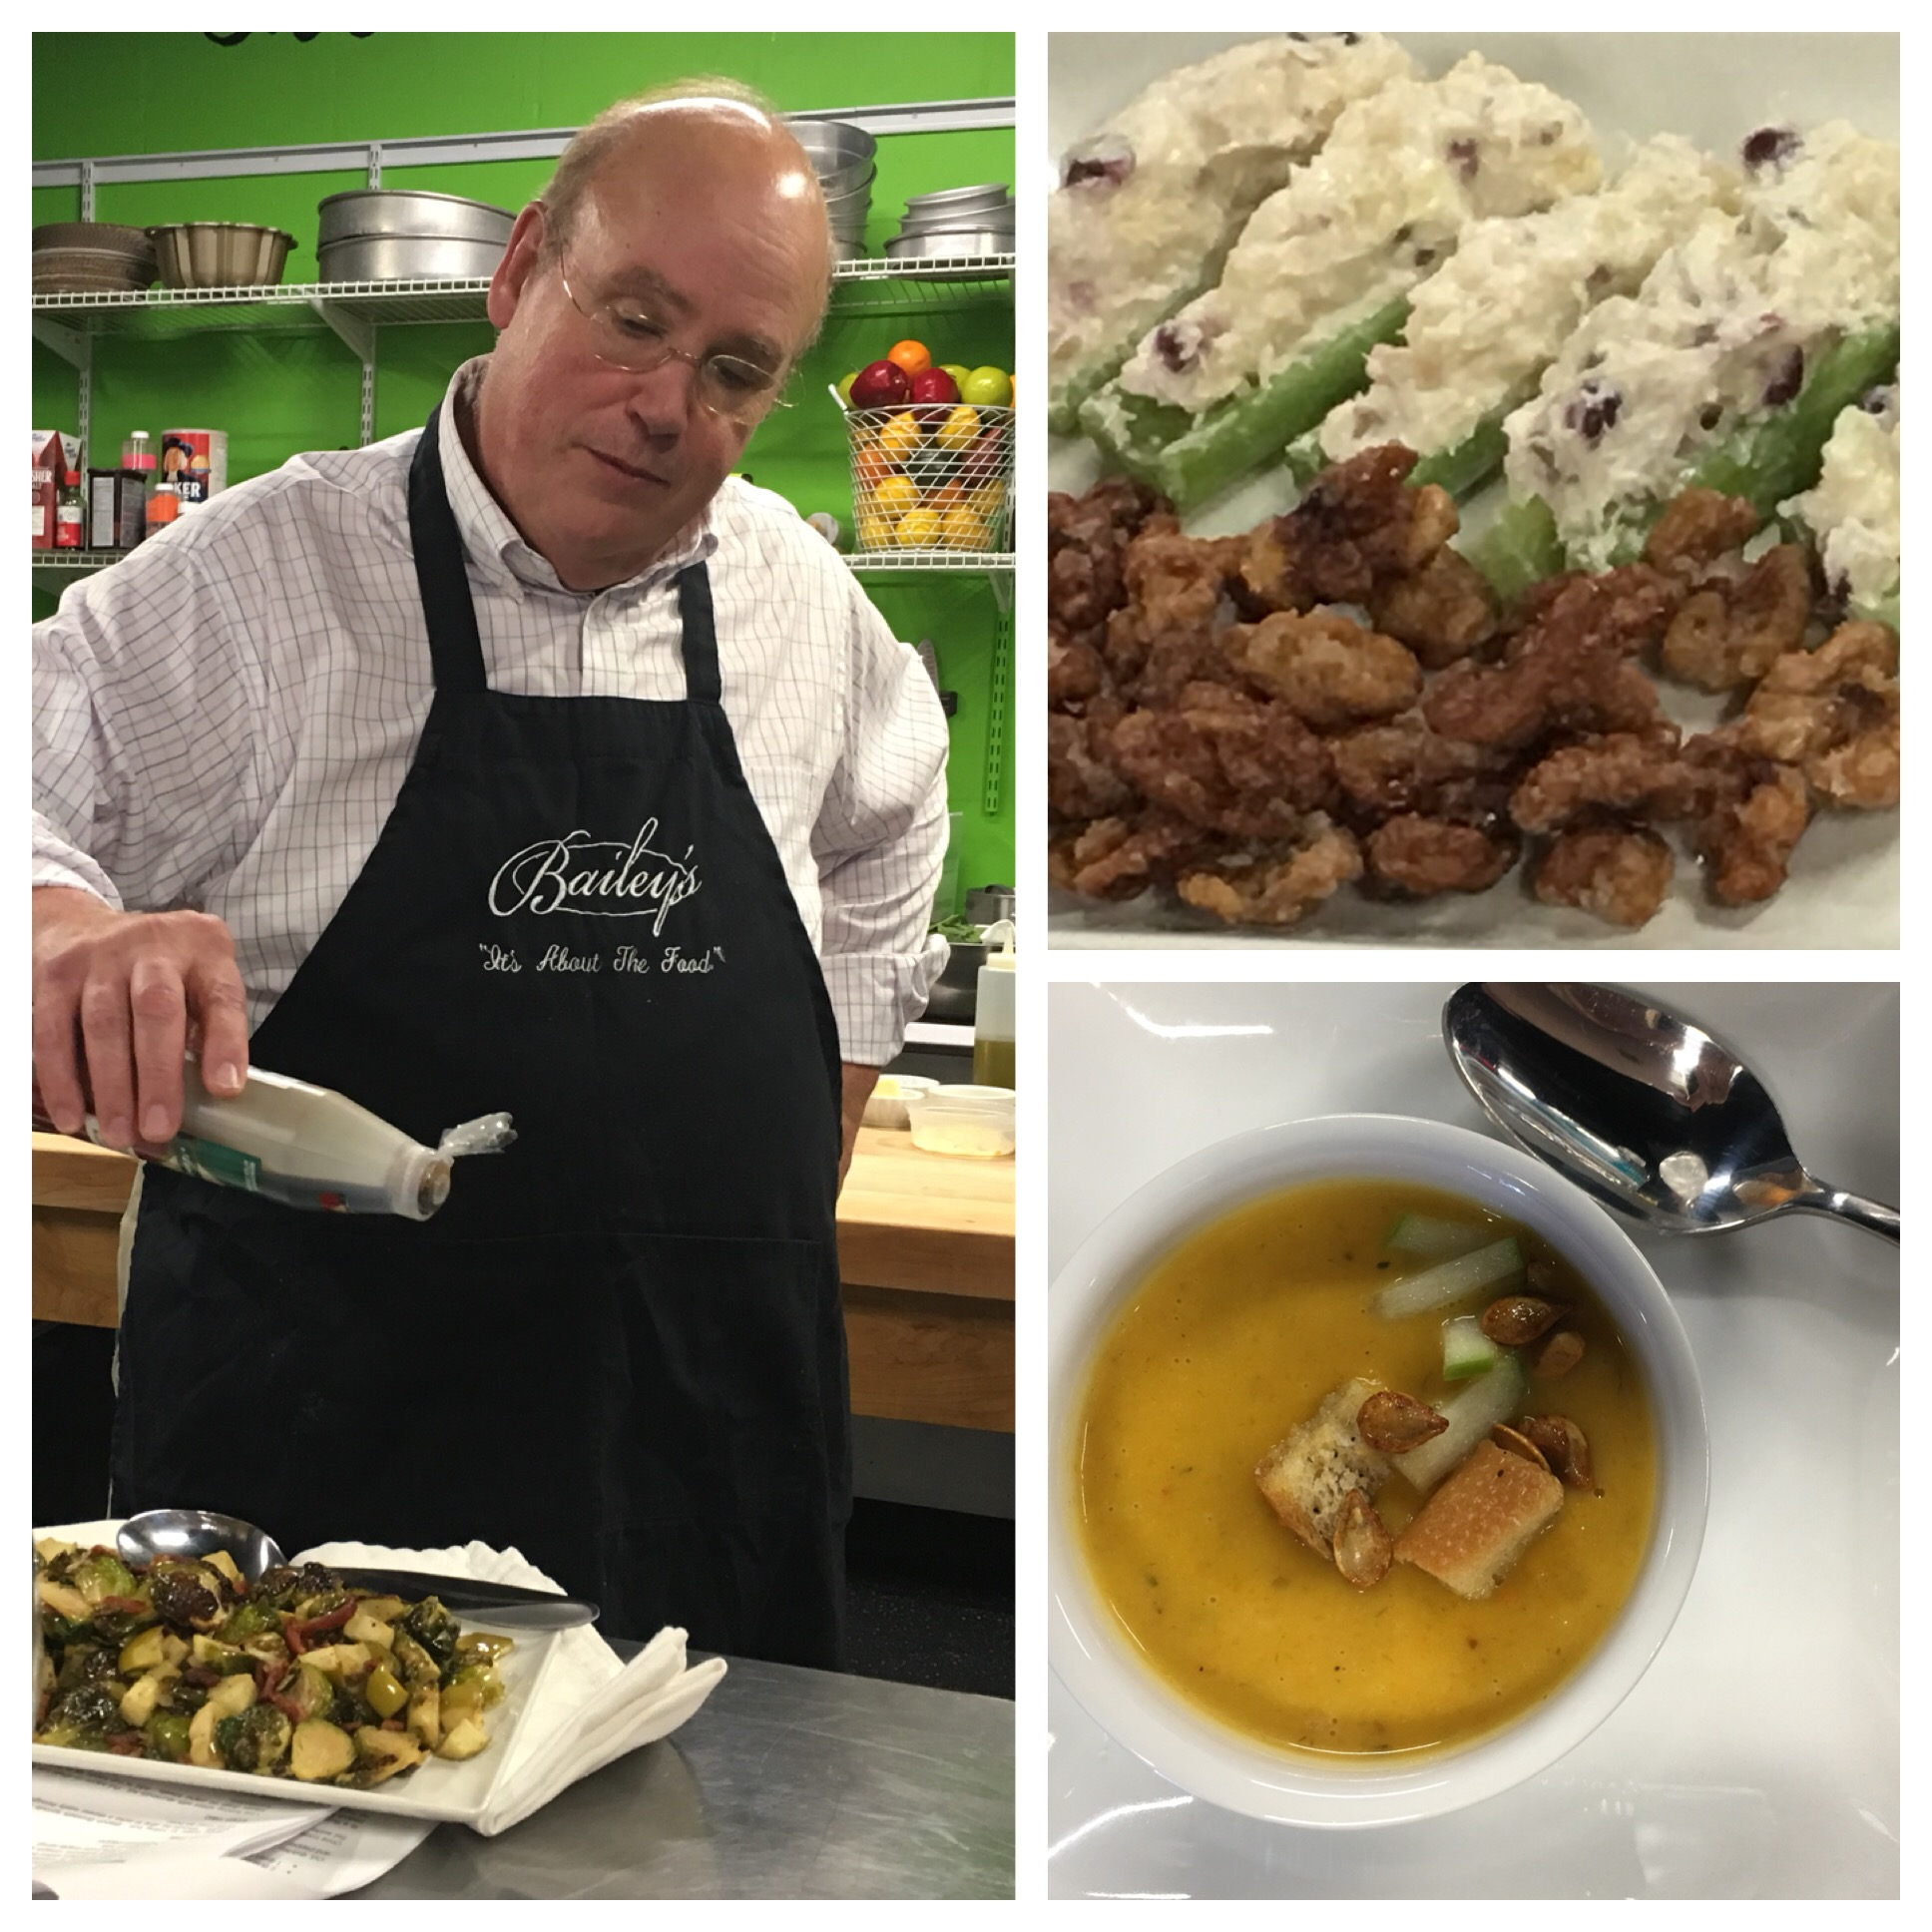 KIm Bailey Makes Amazing Sides at a recent cooking class